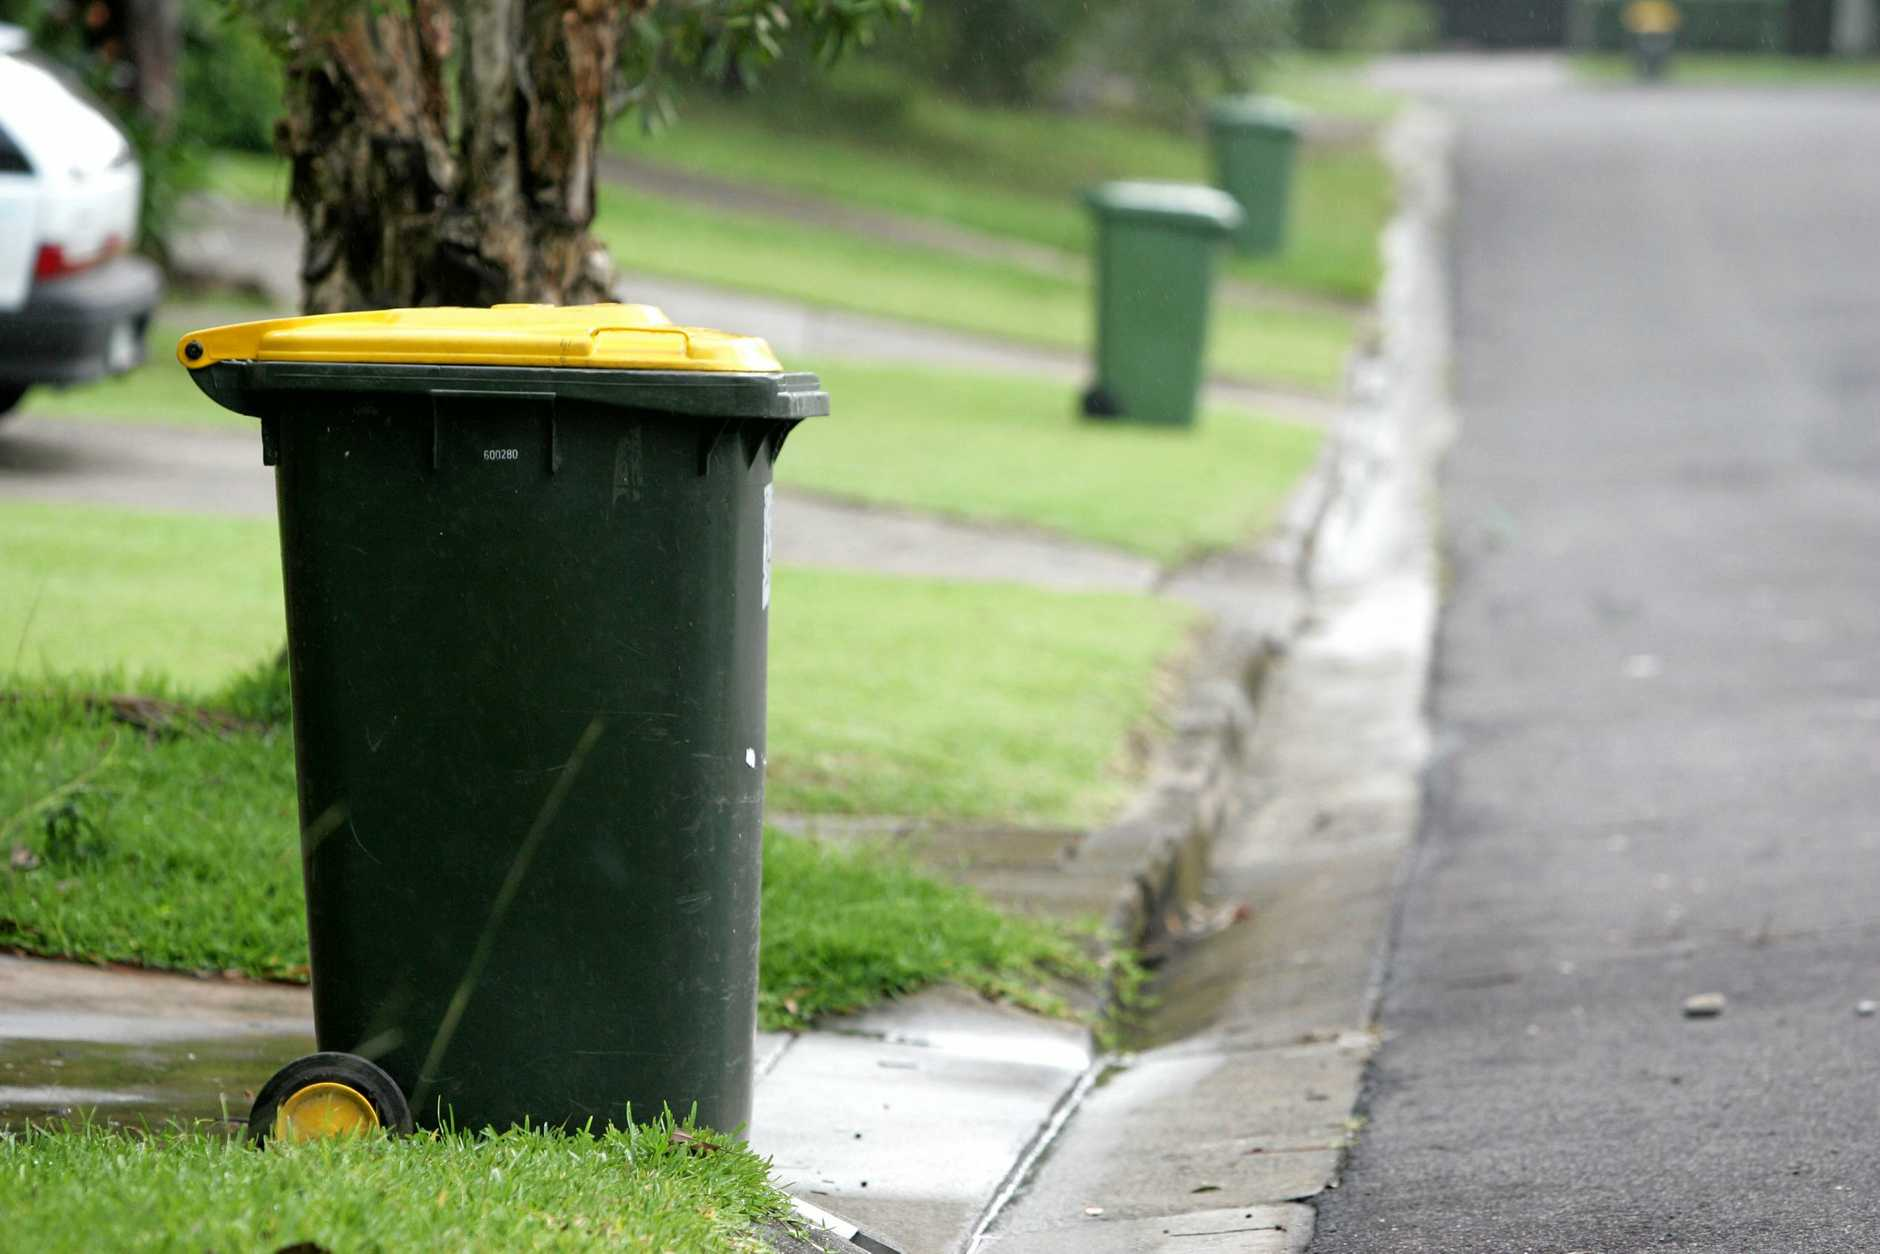 Household waste collection is expected to remain unaffected.